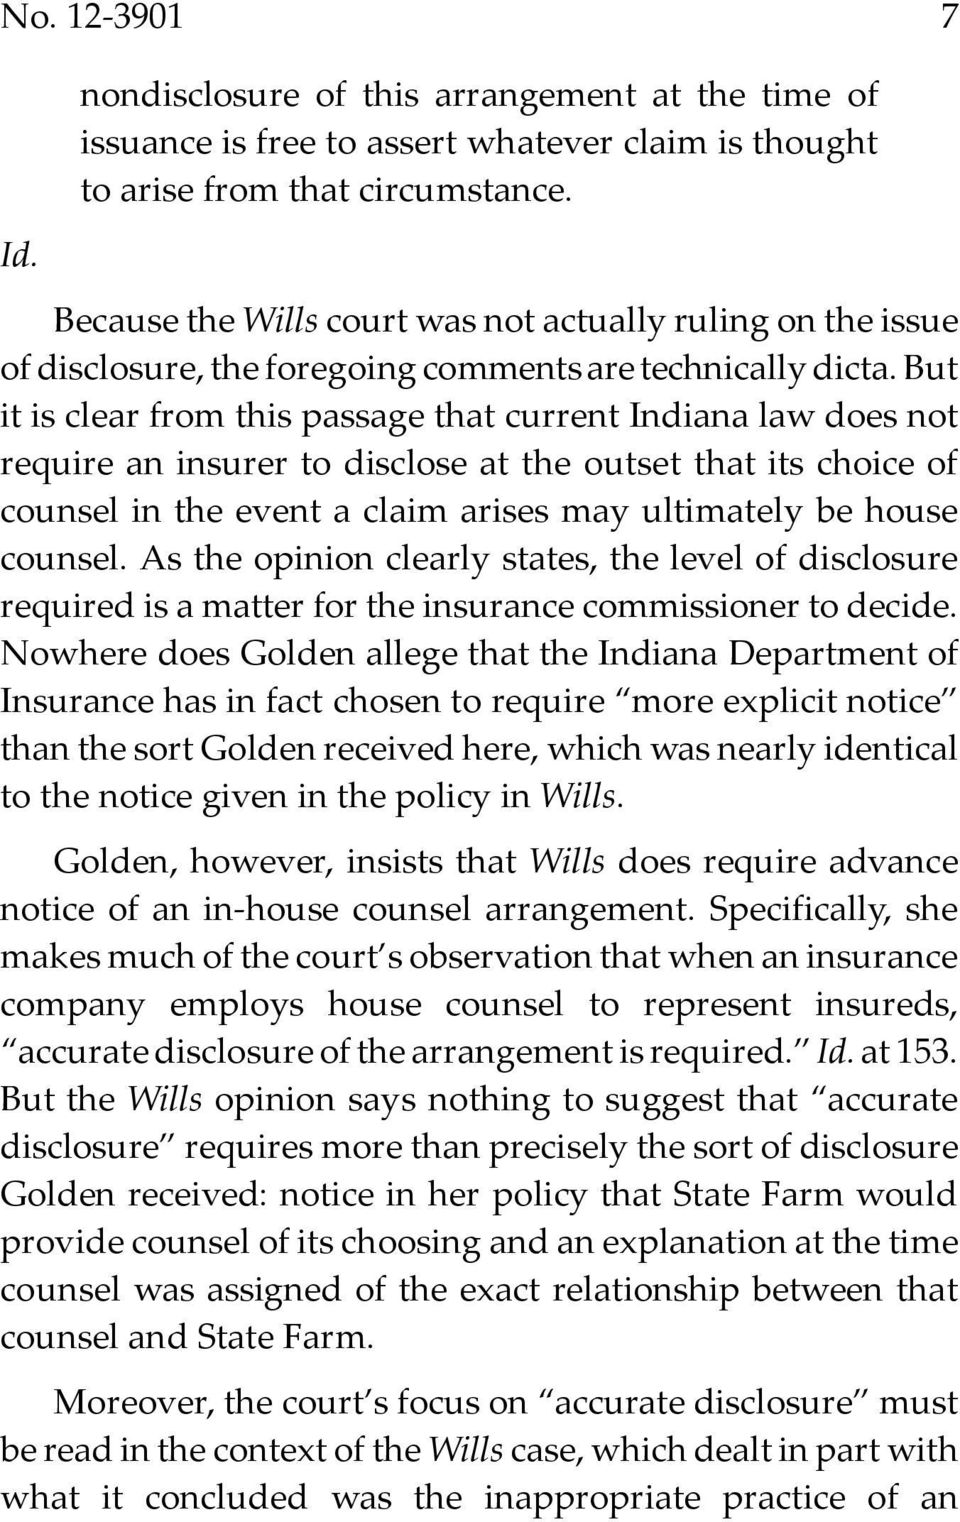 But it is clear from this passage that current Indiana law does not require an insurer to disclose at the outset that its choice of counsel in the event a claim arises may ultimately be house counsel.